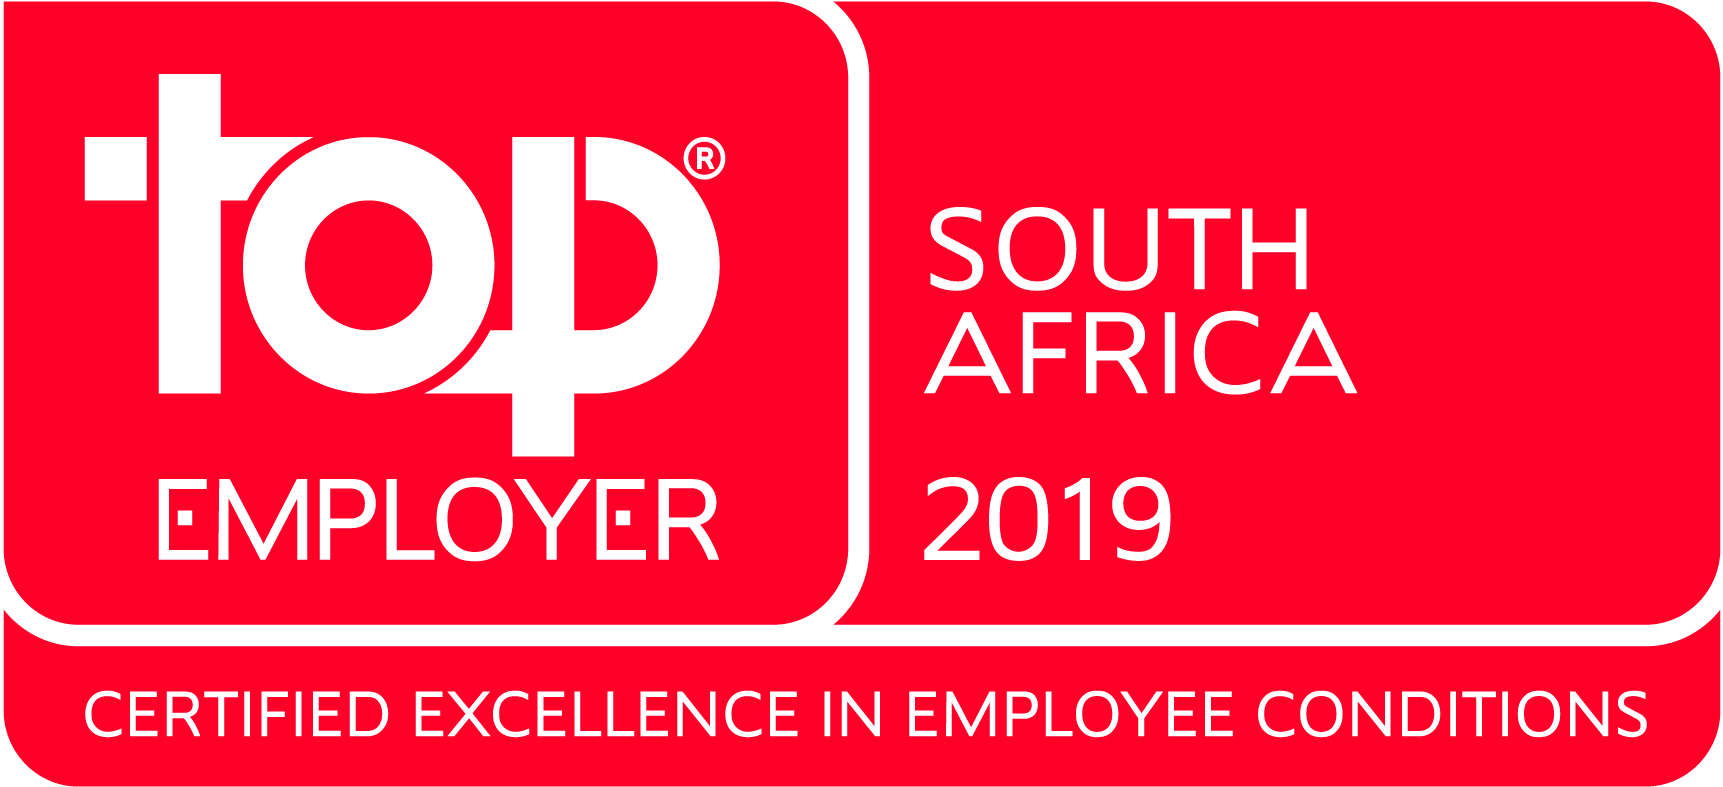 Top_Employer_South_Africa_2019